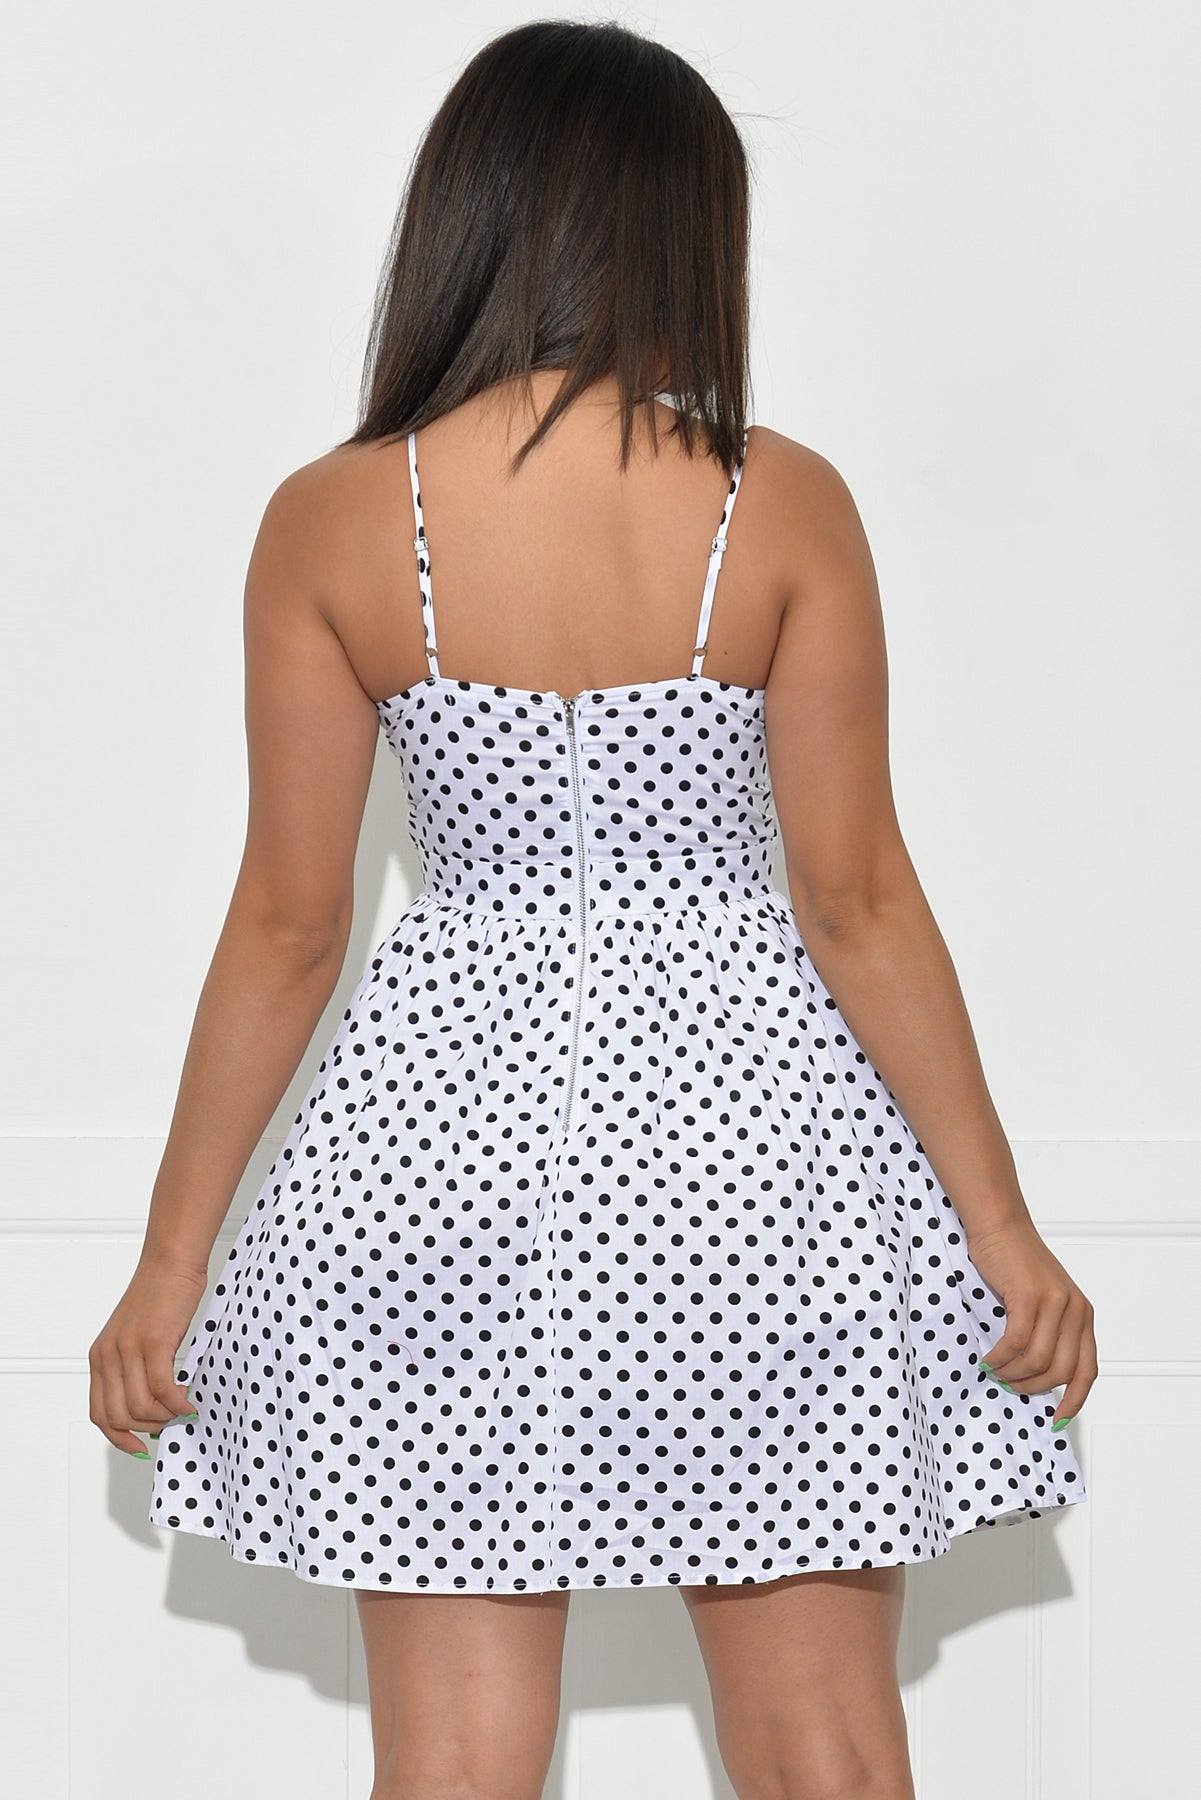 Karly Polka Dot Dress - White